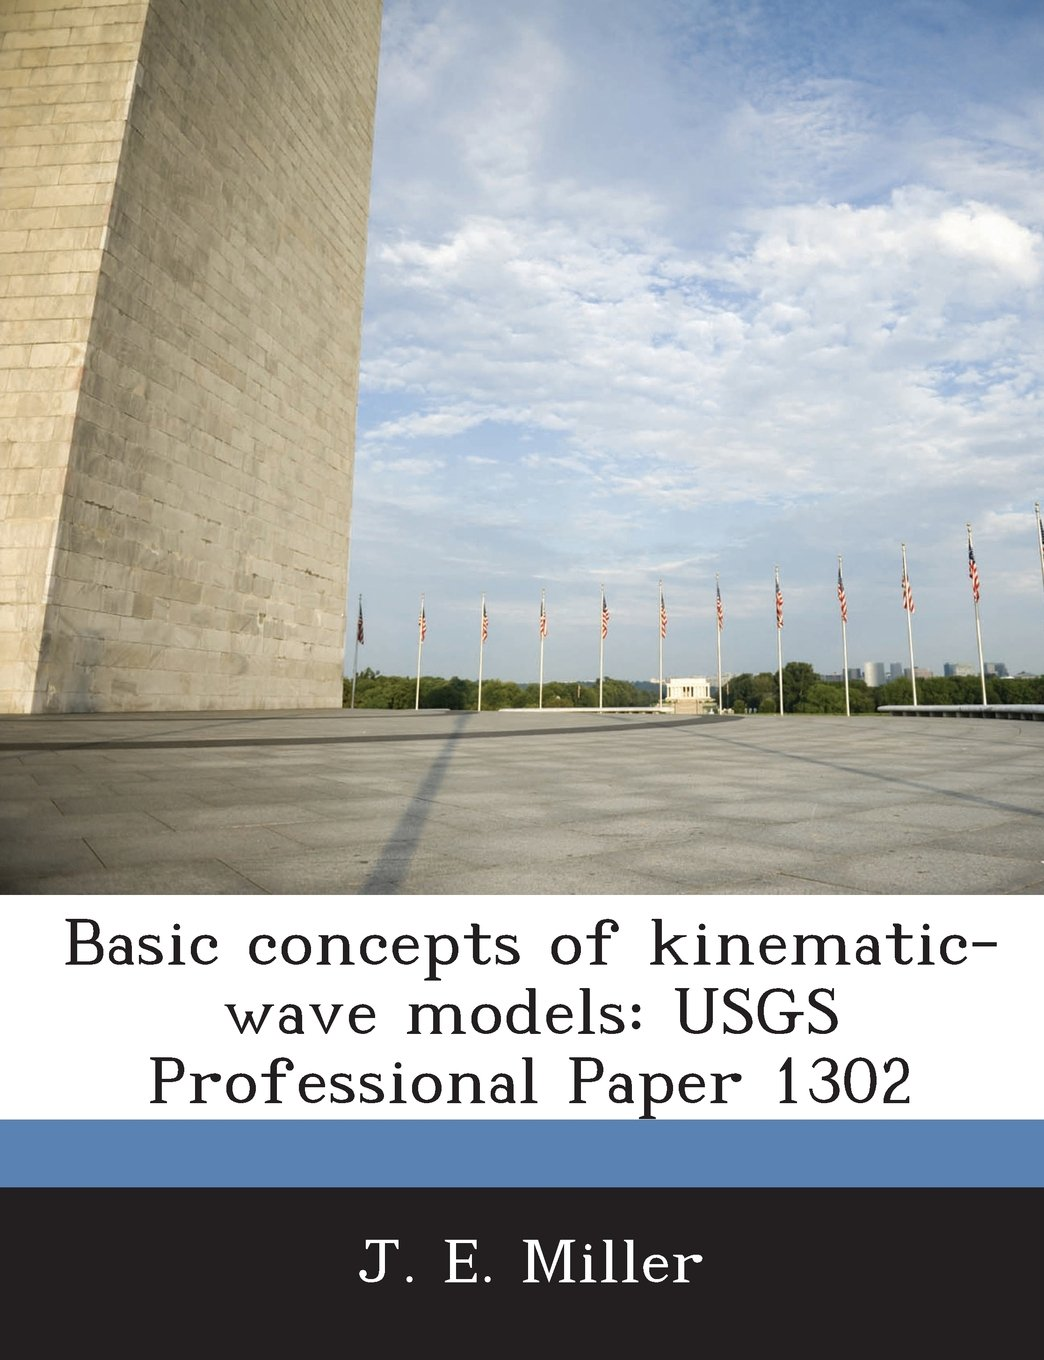 Read Online Basic concepts of kinematic-wave models: USGS Professional Paper 1302 PDF